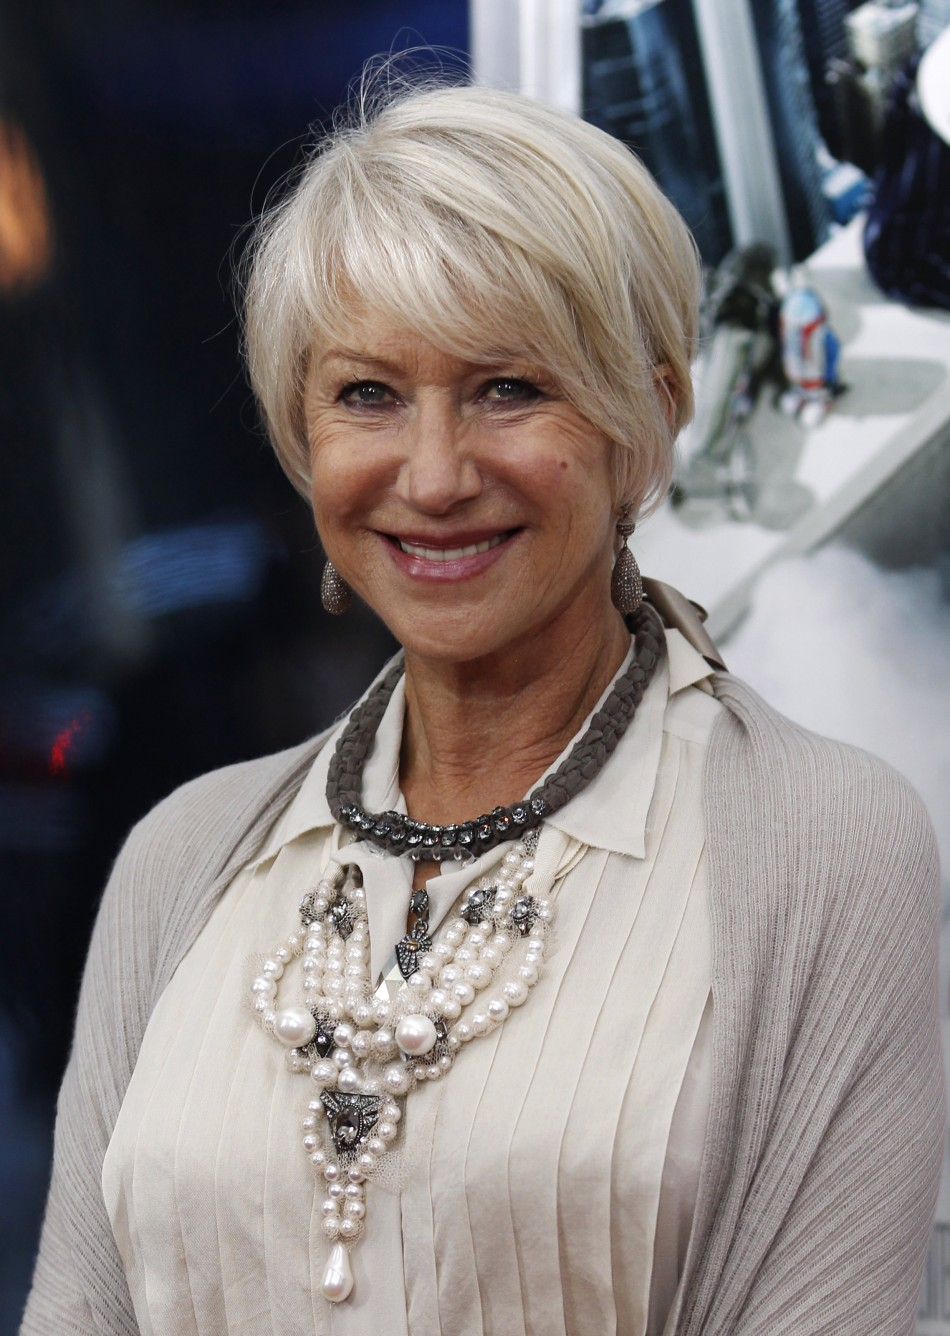 66 Year Old Helen Mirren Wins Body Of The Year Poll